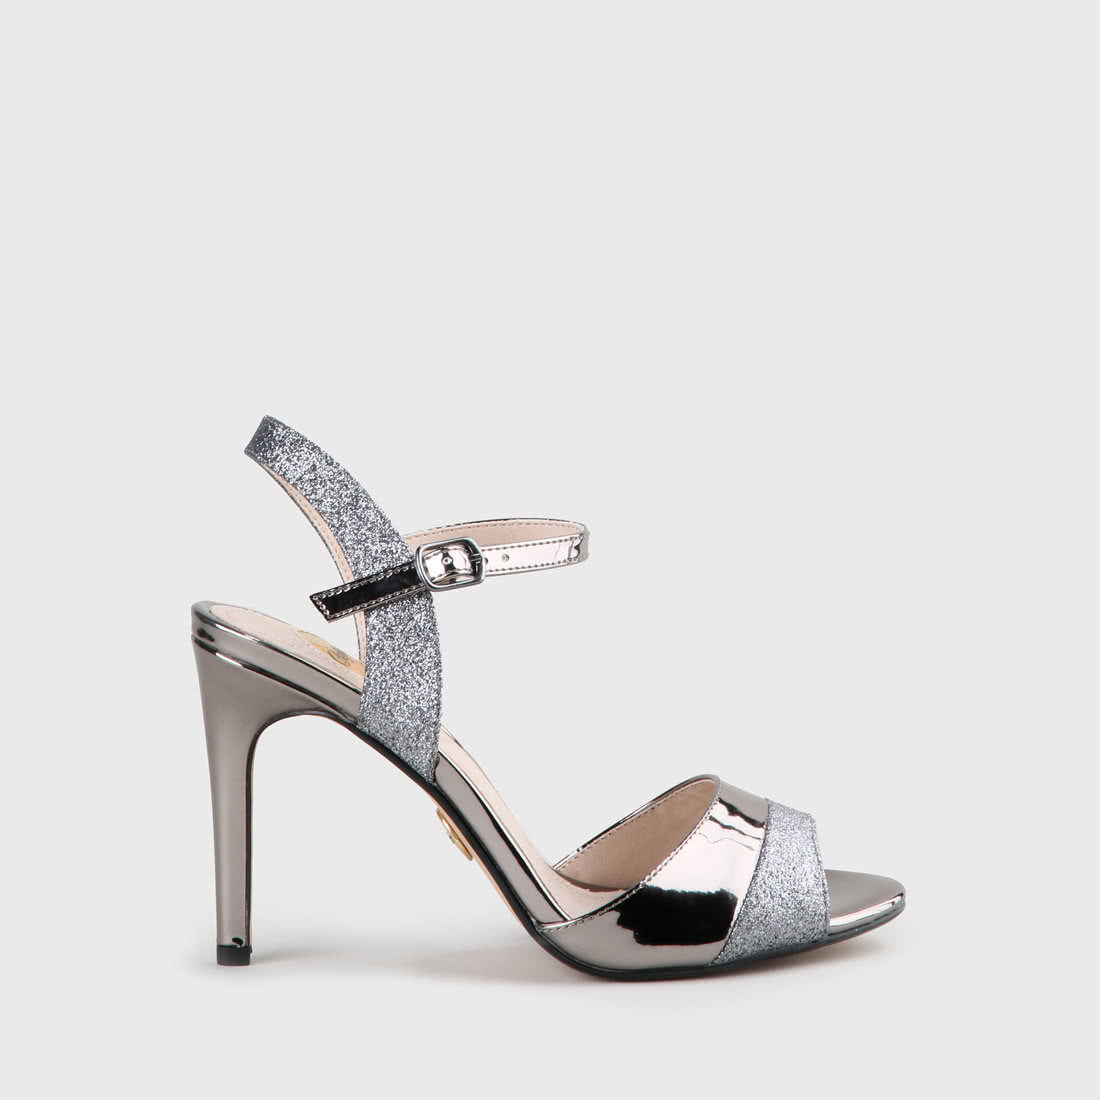 9c4181a34540 Aida sandals glitter lacquer look pewter buy online in BUFFALO ...